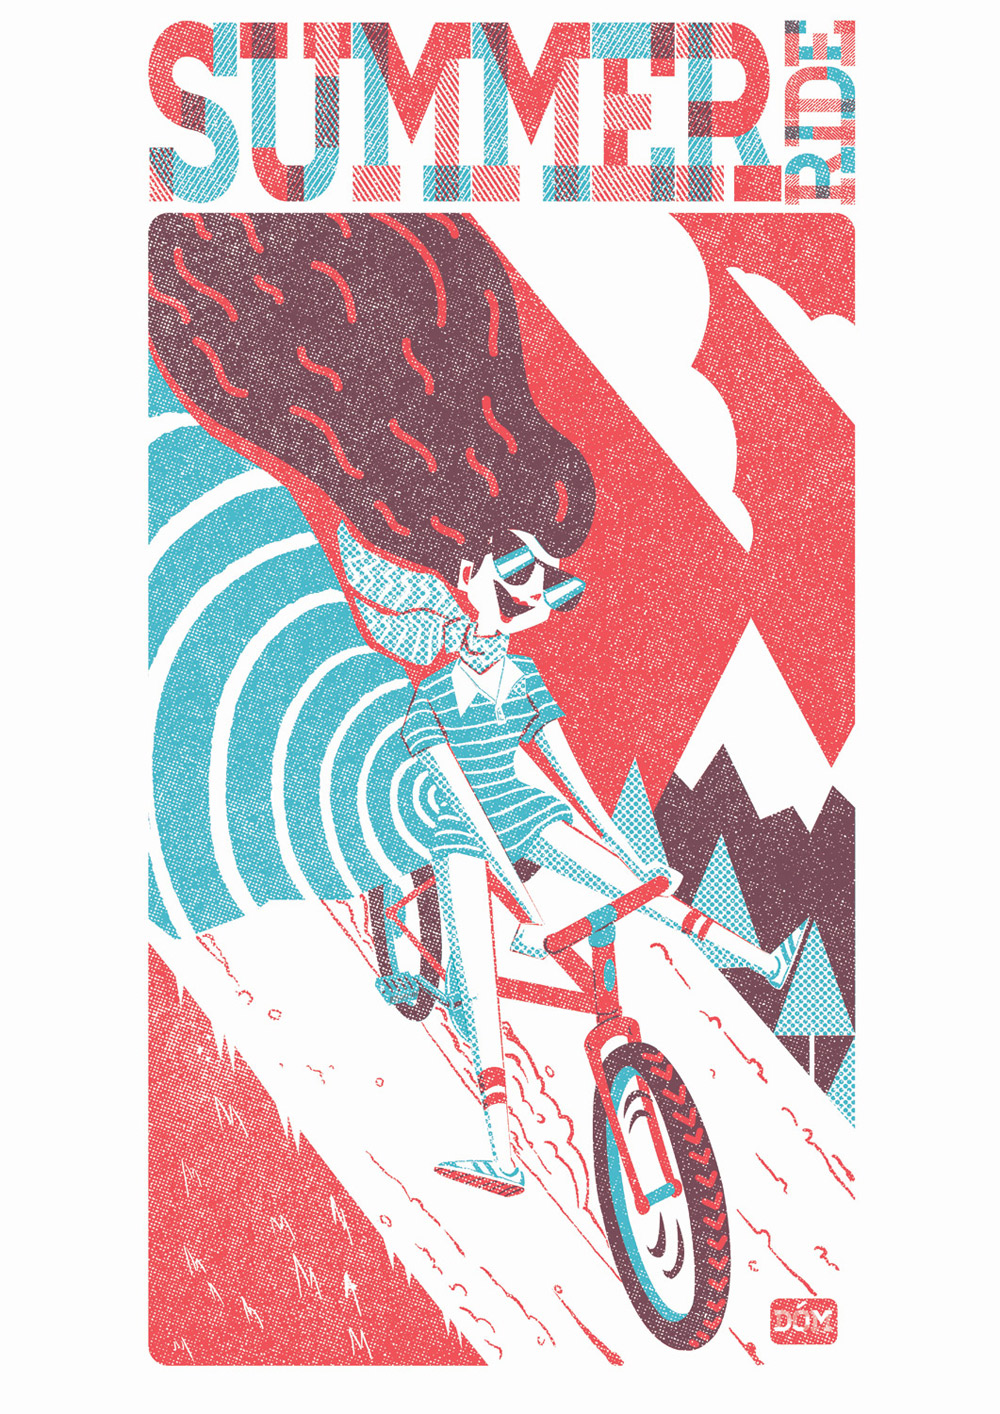 Limited edition screen print for Artcrank USA exhibition, UK.